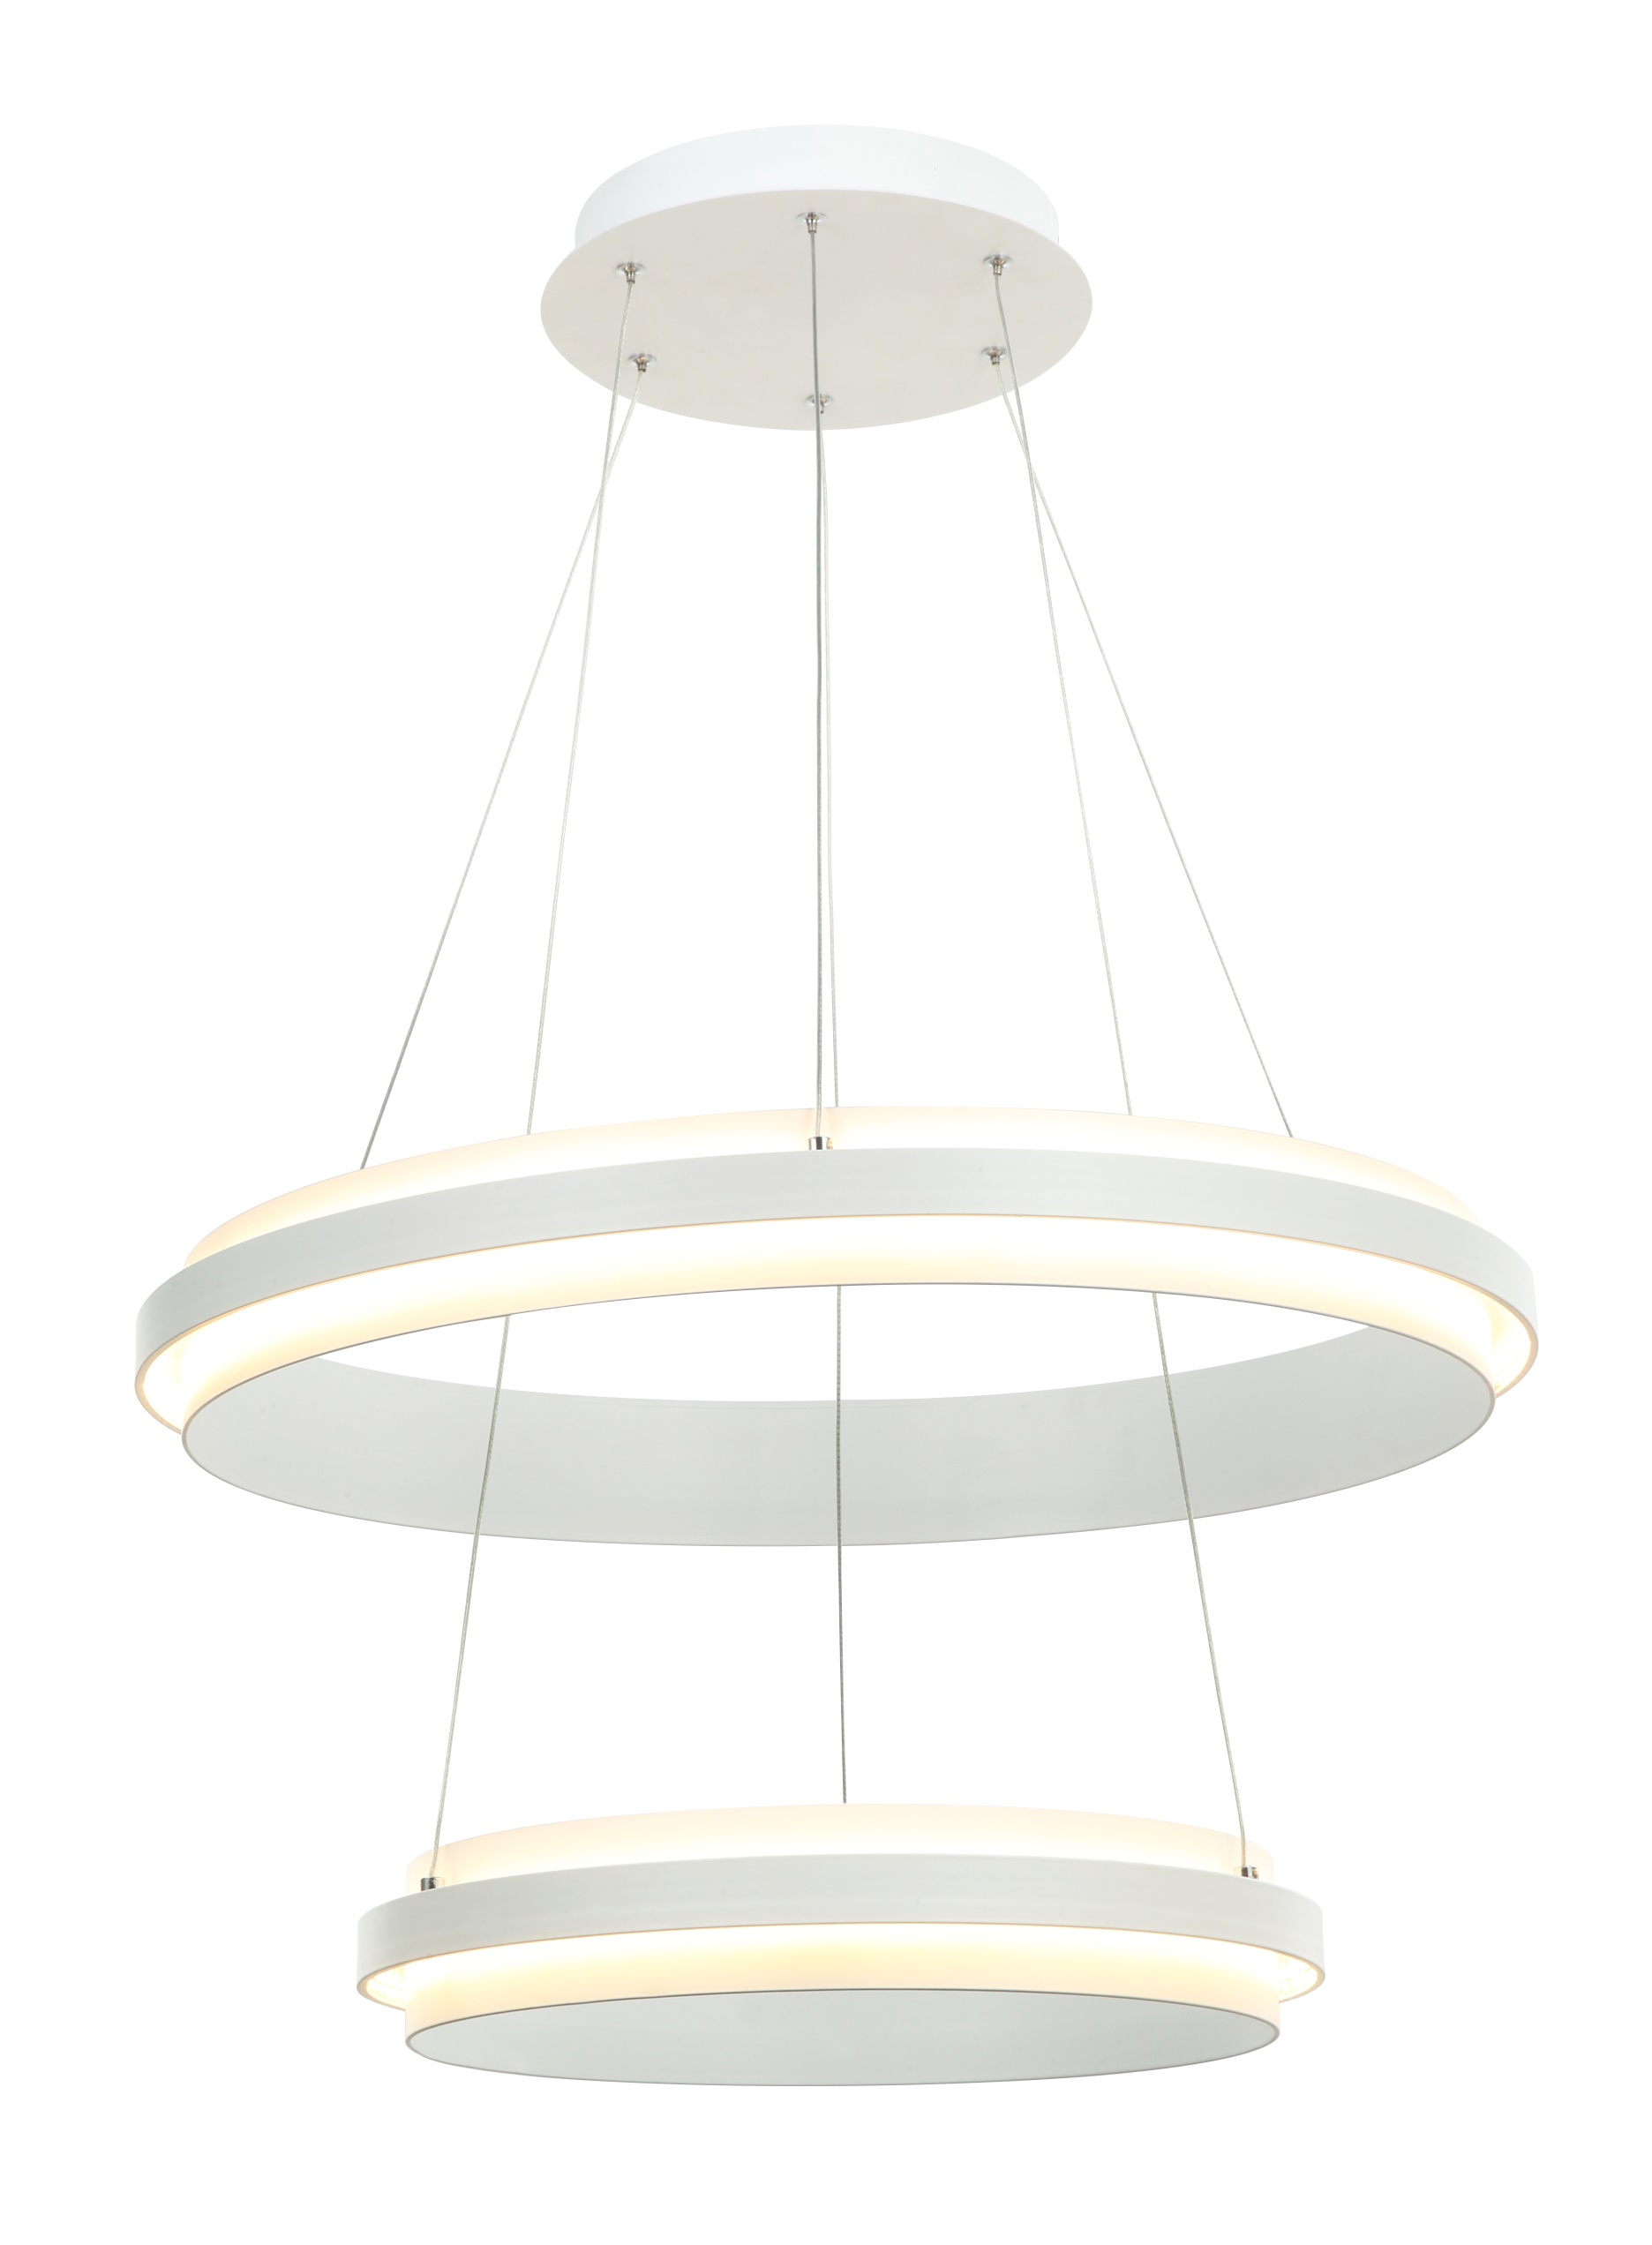 Saintly 755233a55w3c modern pendant lighting free quote for restaurant-1